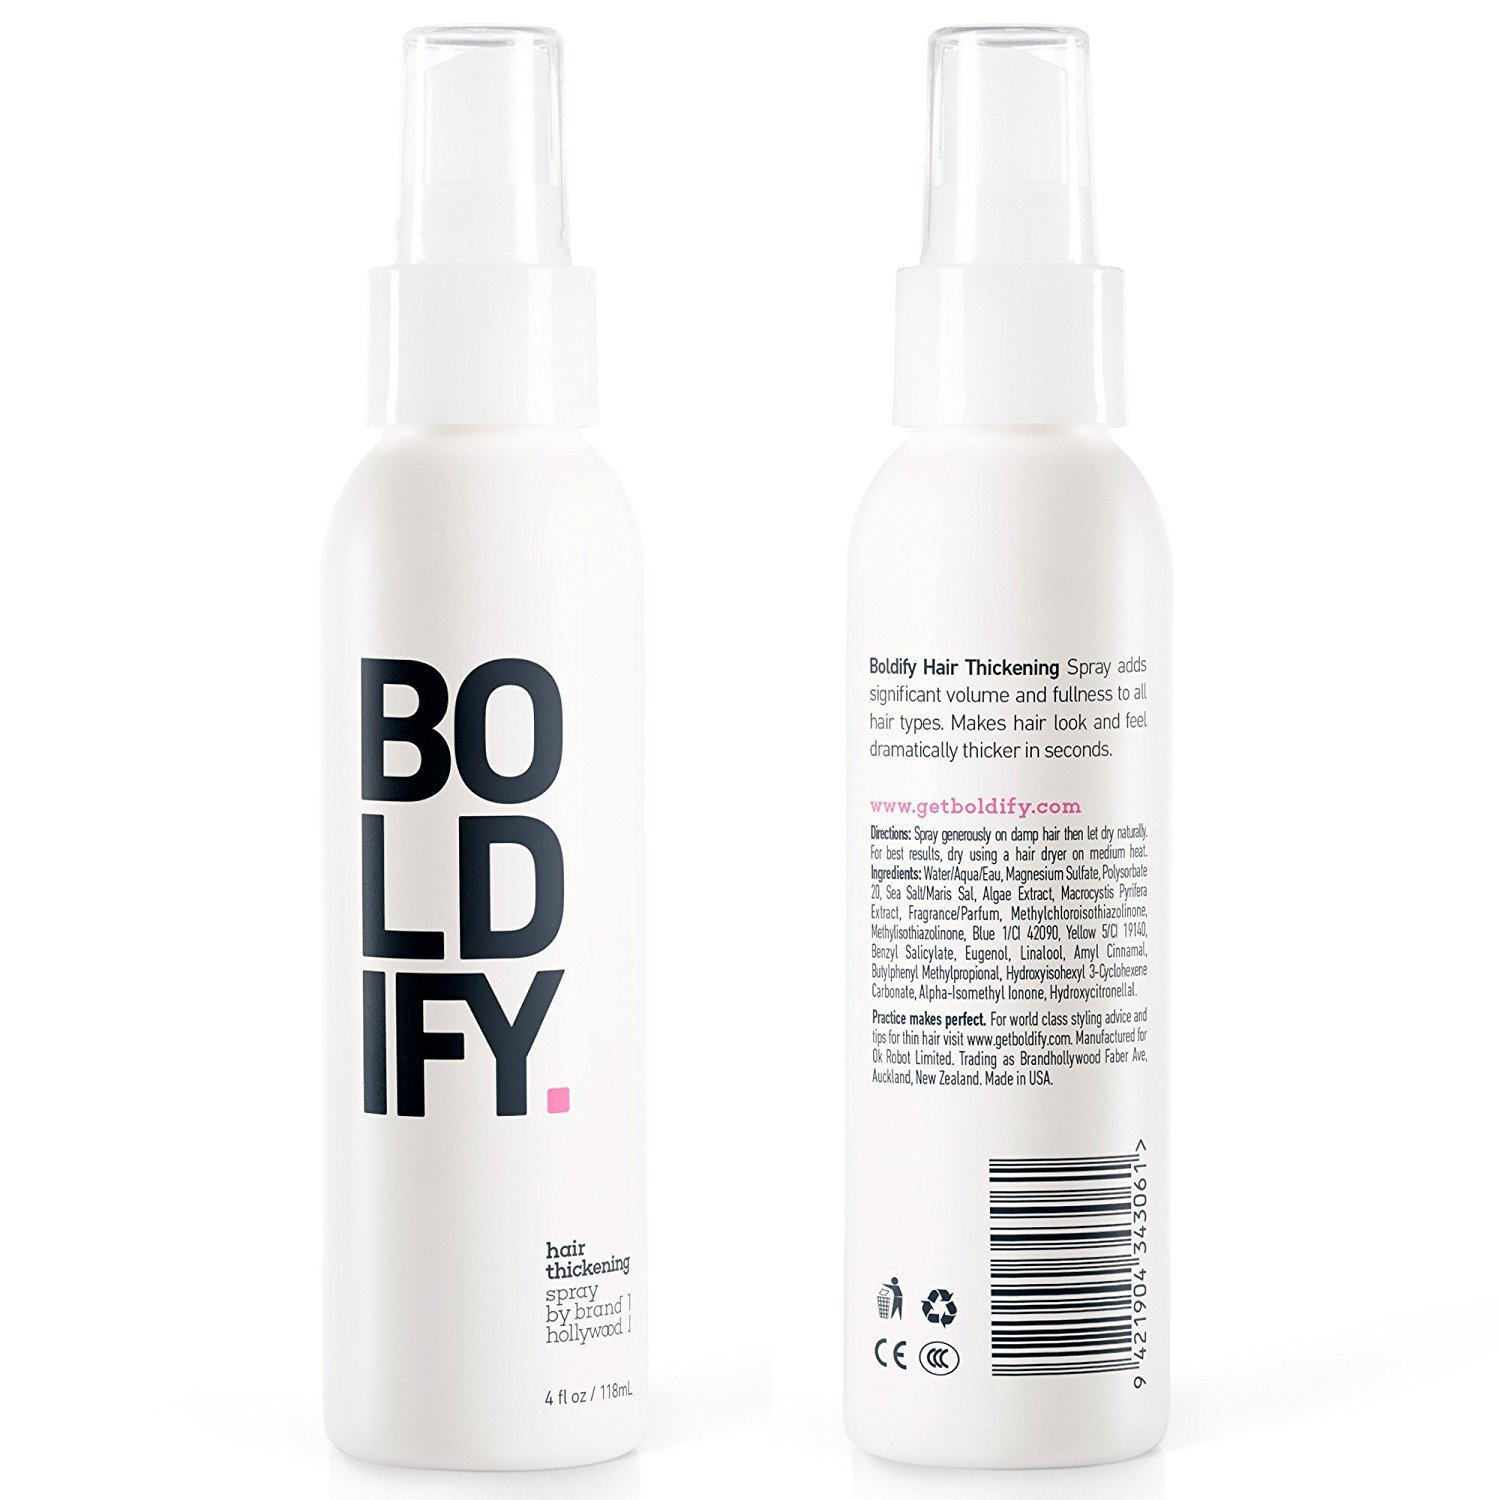 BOLDIFY Hair Thickening Spray - Get Thicker Hair in 60 Seconds - Stylist Recommended Hair Thickening Products for Volume, Texture and Lift - The Ultimate Hair Thickener for Women and Men - 8 Ounce by Boldify (Image #2)